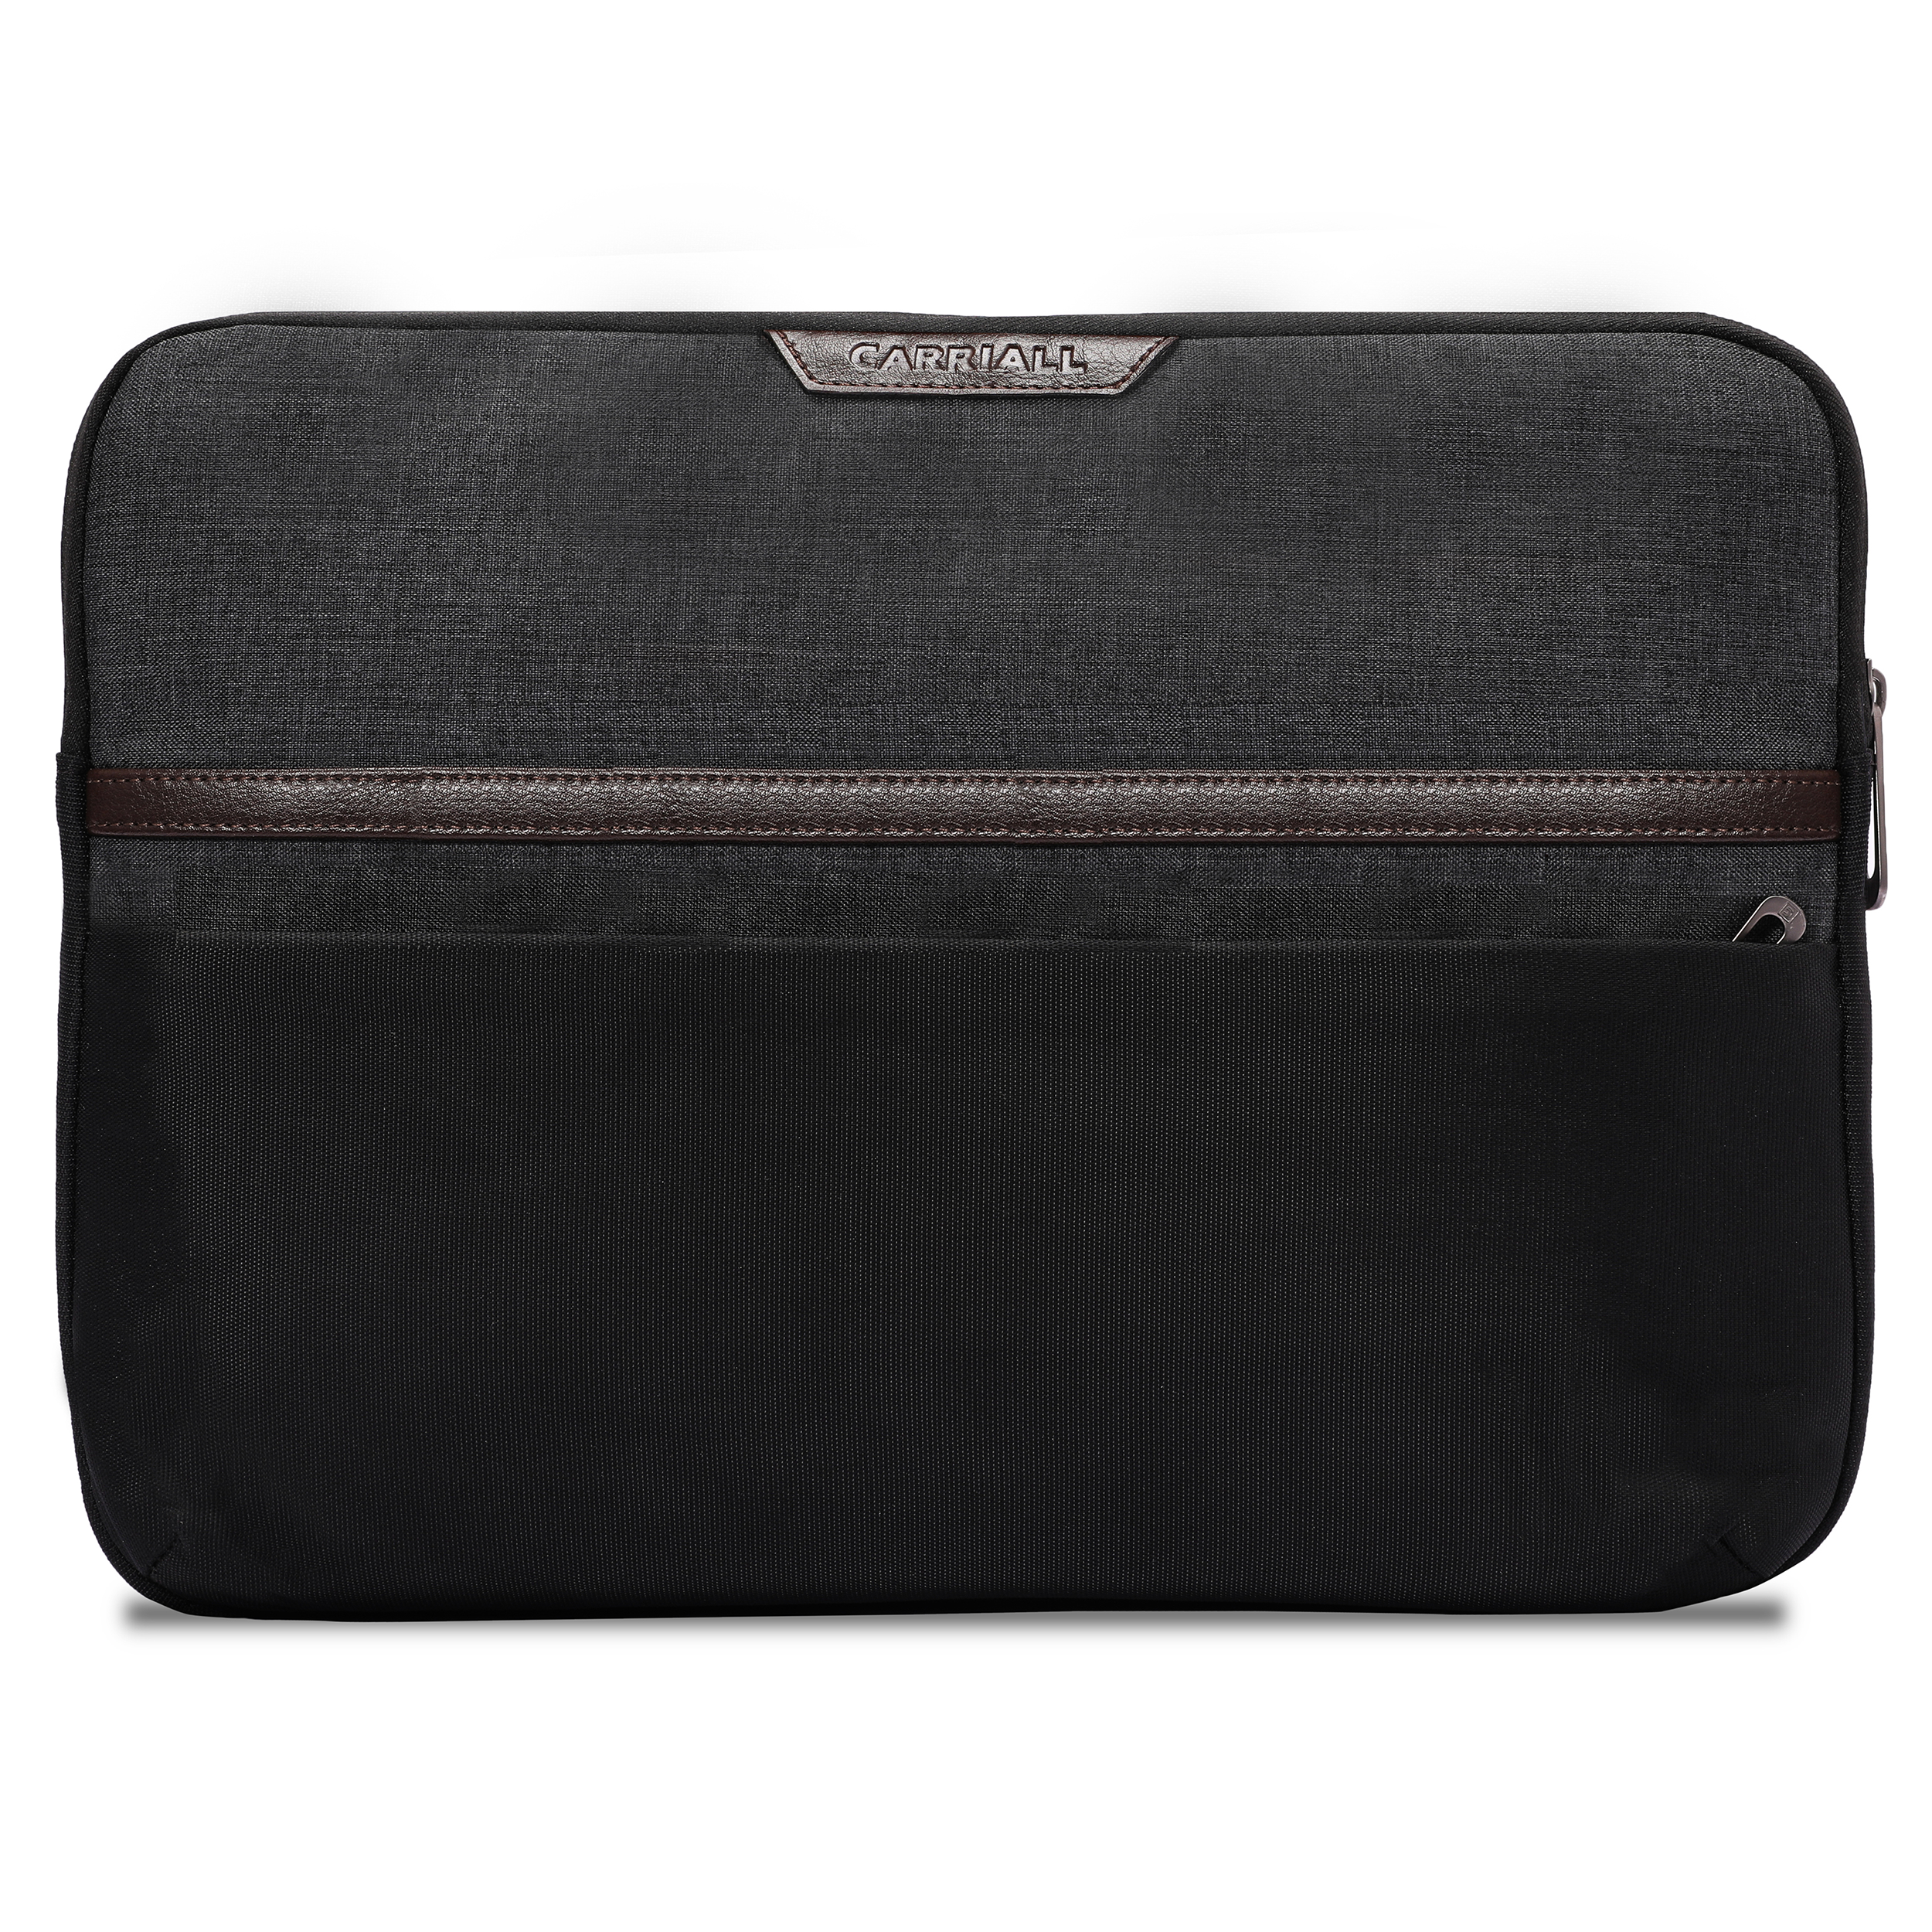 Carriall Urbane Durable Fabric Sleeve for 14 inch Laptop (Water Resistant, CALSURBANB2, Black)_1